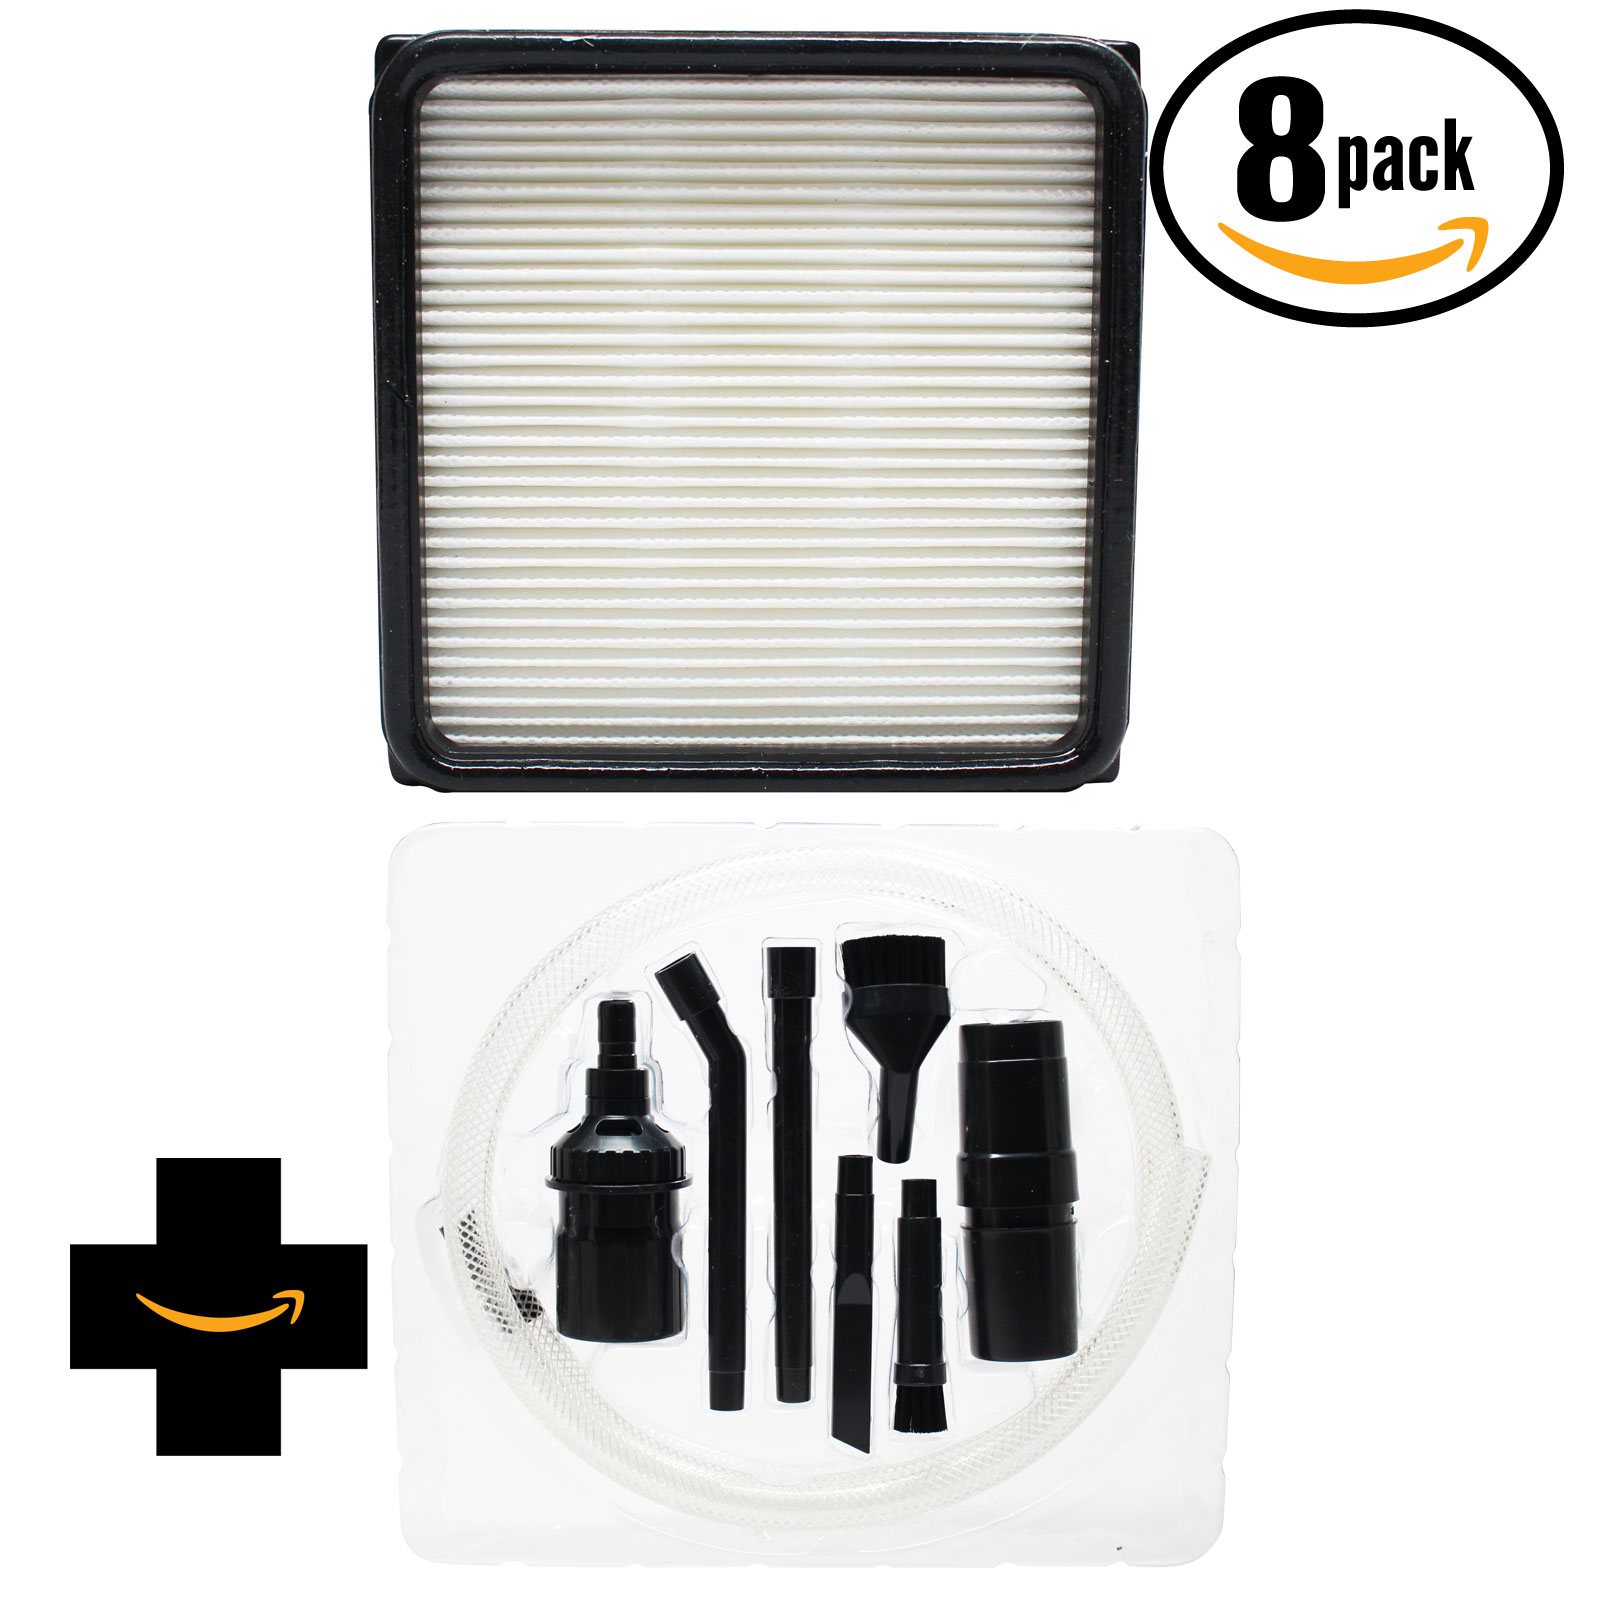 8-Pack Replacement Dirt Devil Breeze Cyclonic Upright UD70107 Vacuum HEPA Filter and Foam Filter Insert with 7-Piece Kit - Compatible Dirt Devil 304708001, F59, F66 HEPA Filter and Foam Filter Insert